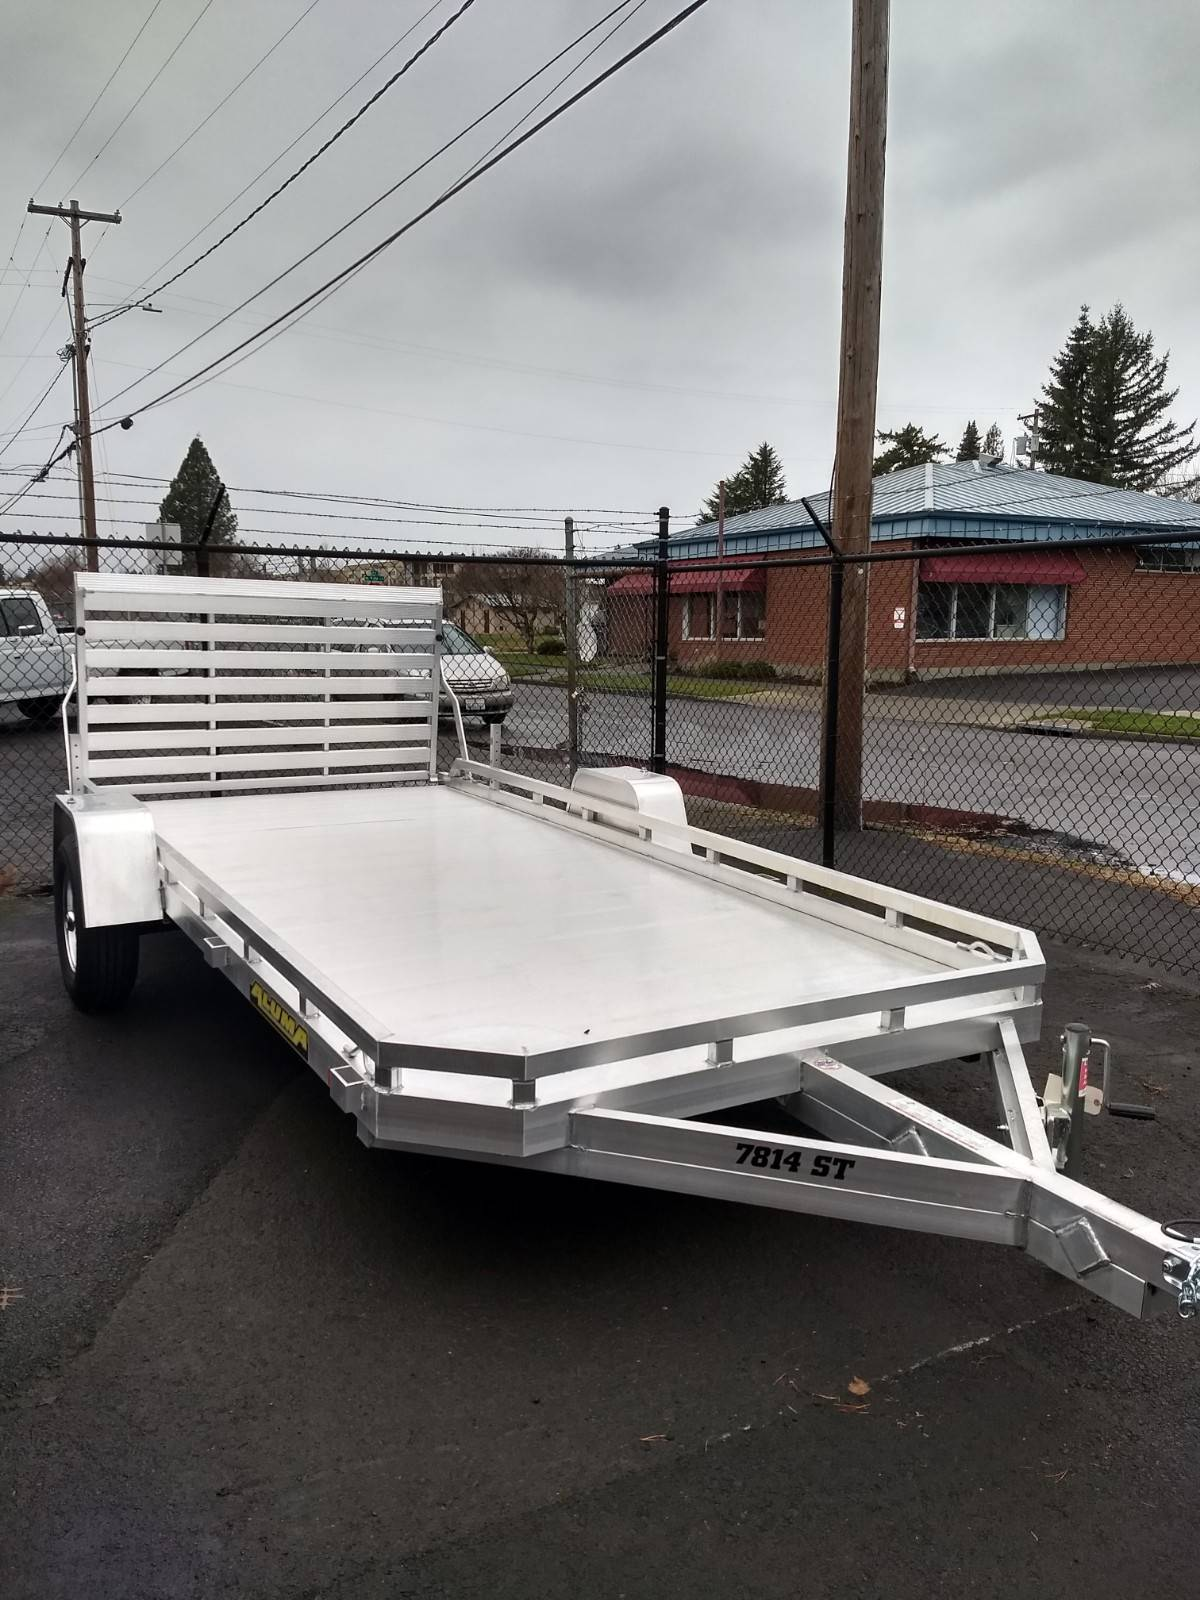 2019 ALUMA 7814ST in Gresham, Oregon